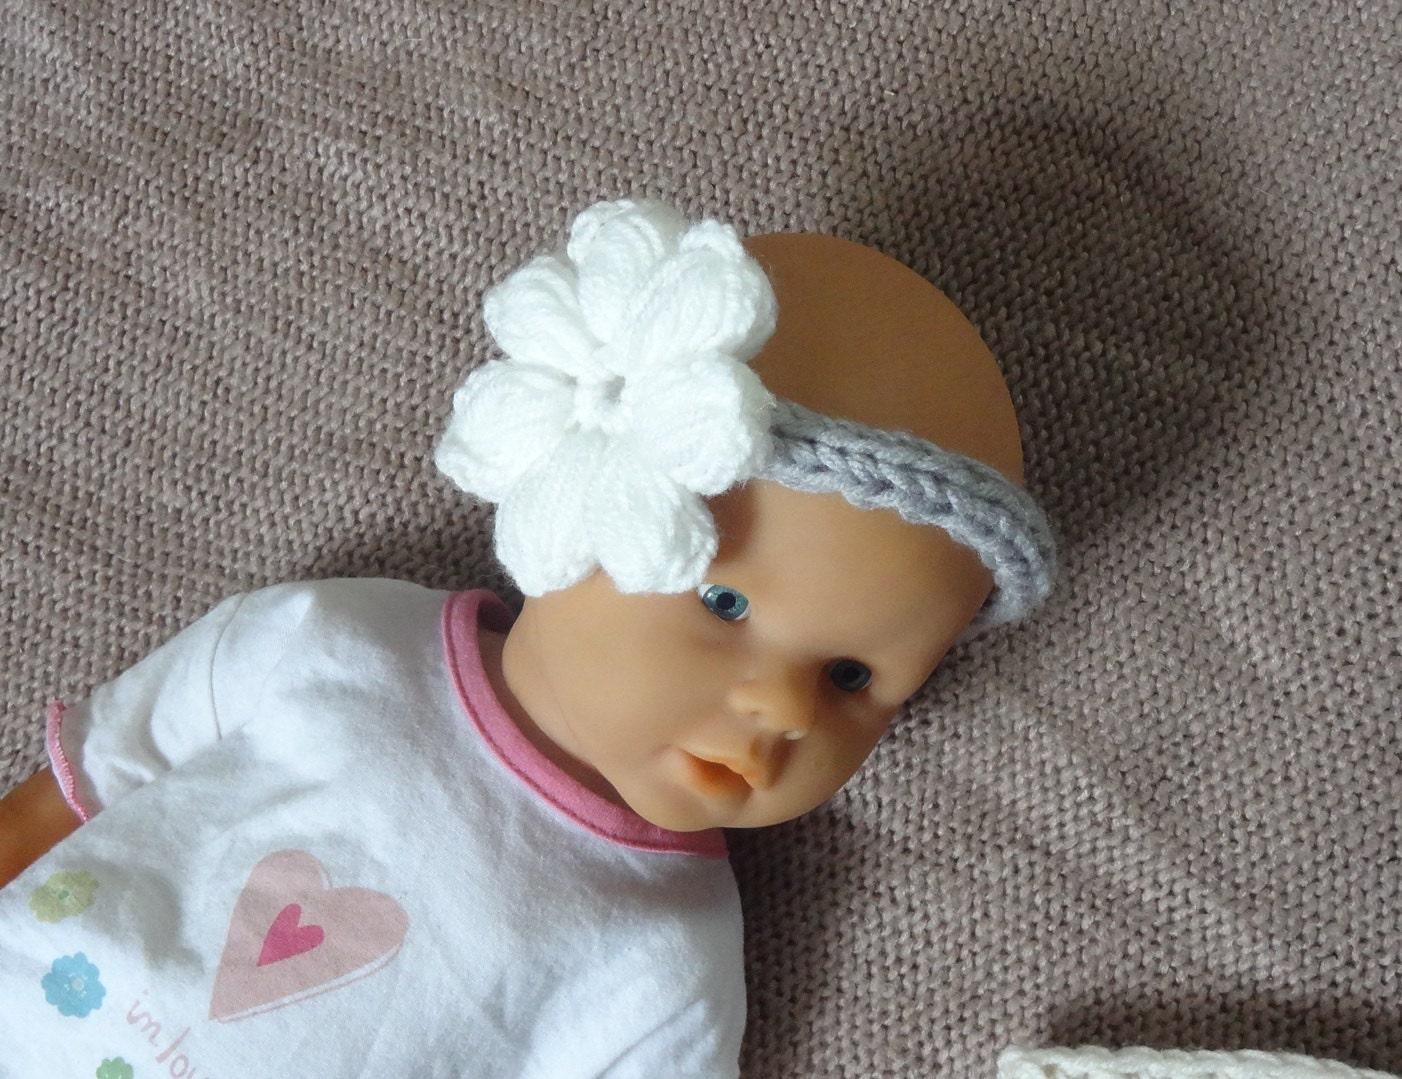 Knitting Headband For Baby : Knit baby headband girls children s by ifonka